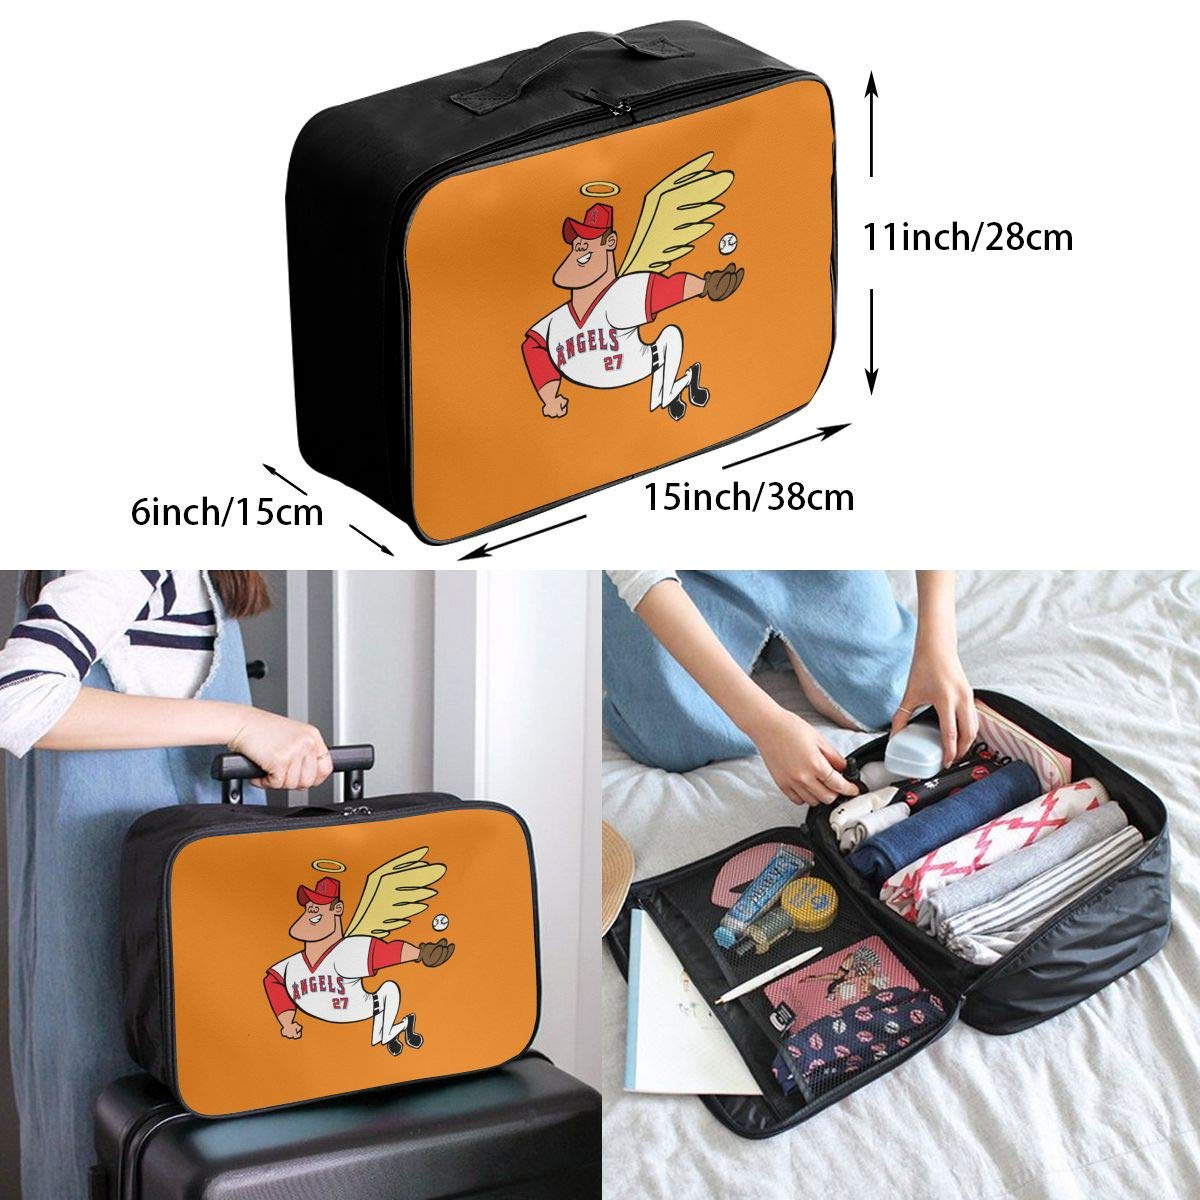 Travel Duffel Bag Waterproof Lightweight Large Capacity Luggage Bag MikeTrout Angel Cartoon Logo Portable Weekender Bag For Travel Camping Sport White